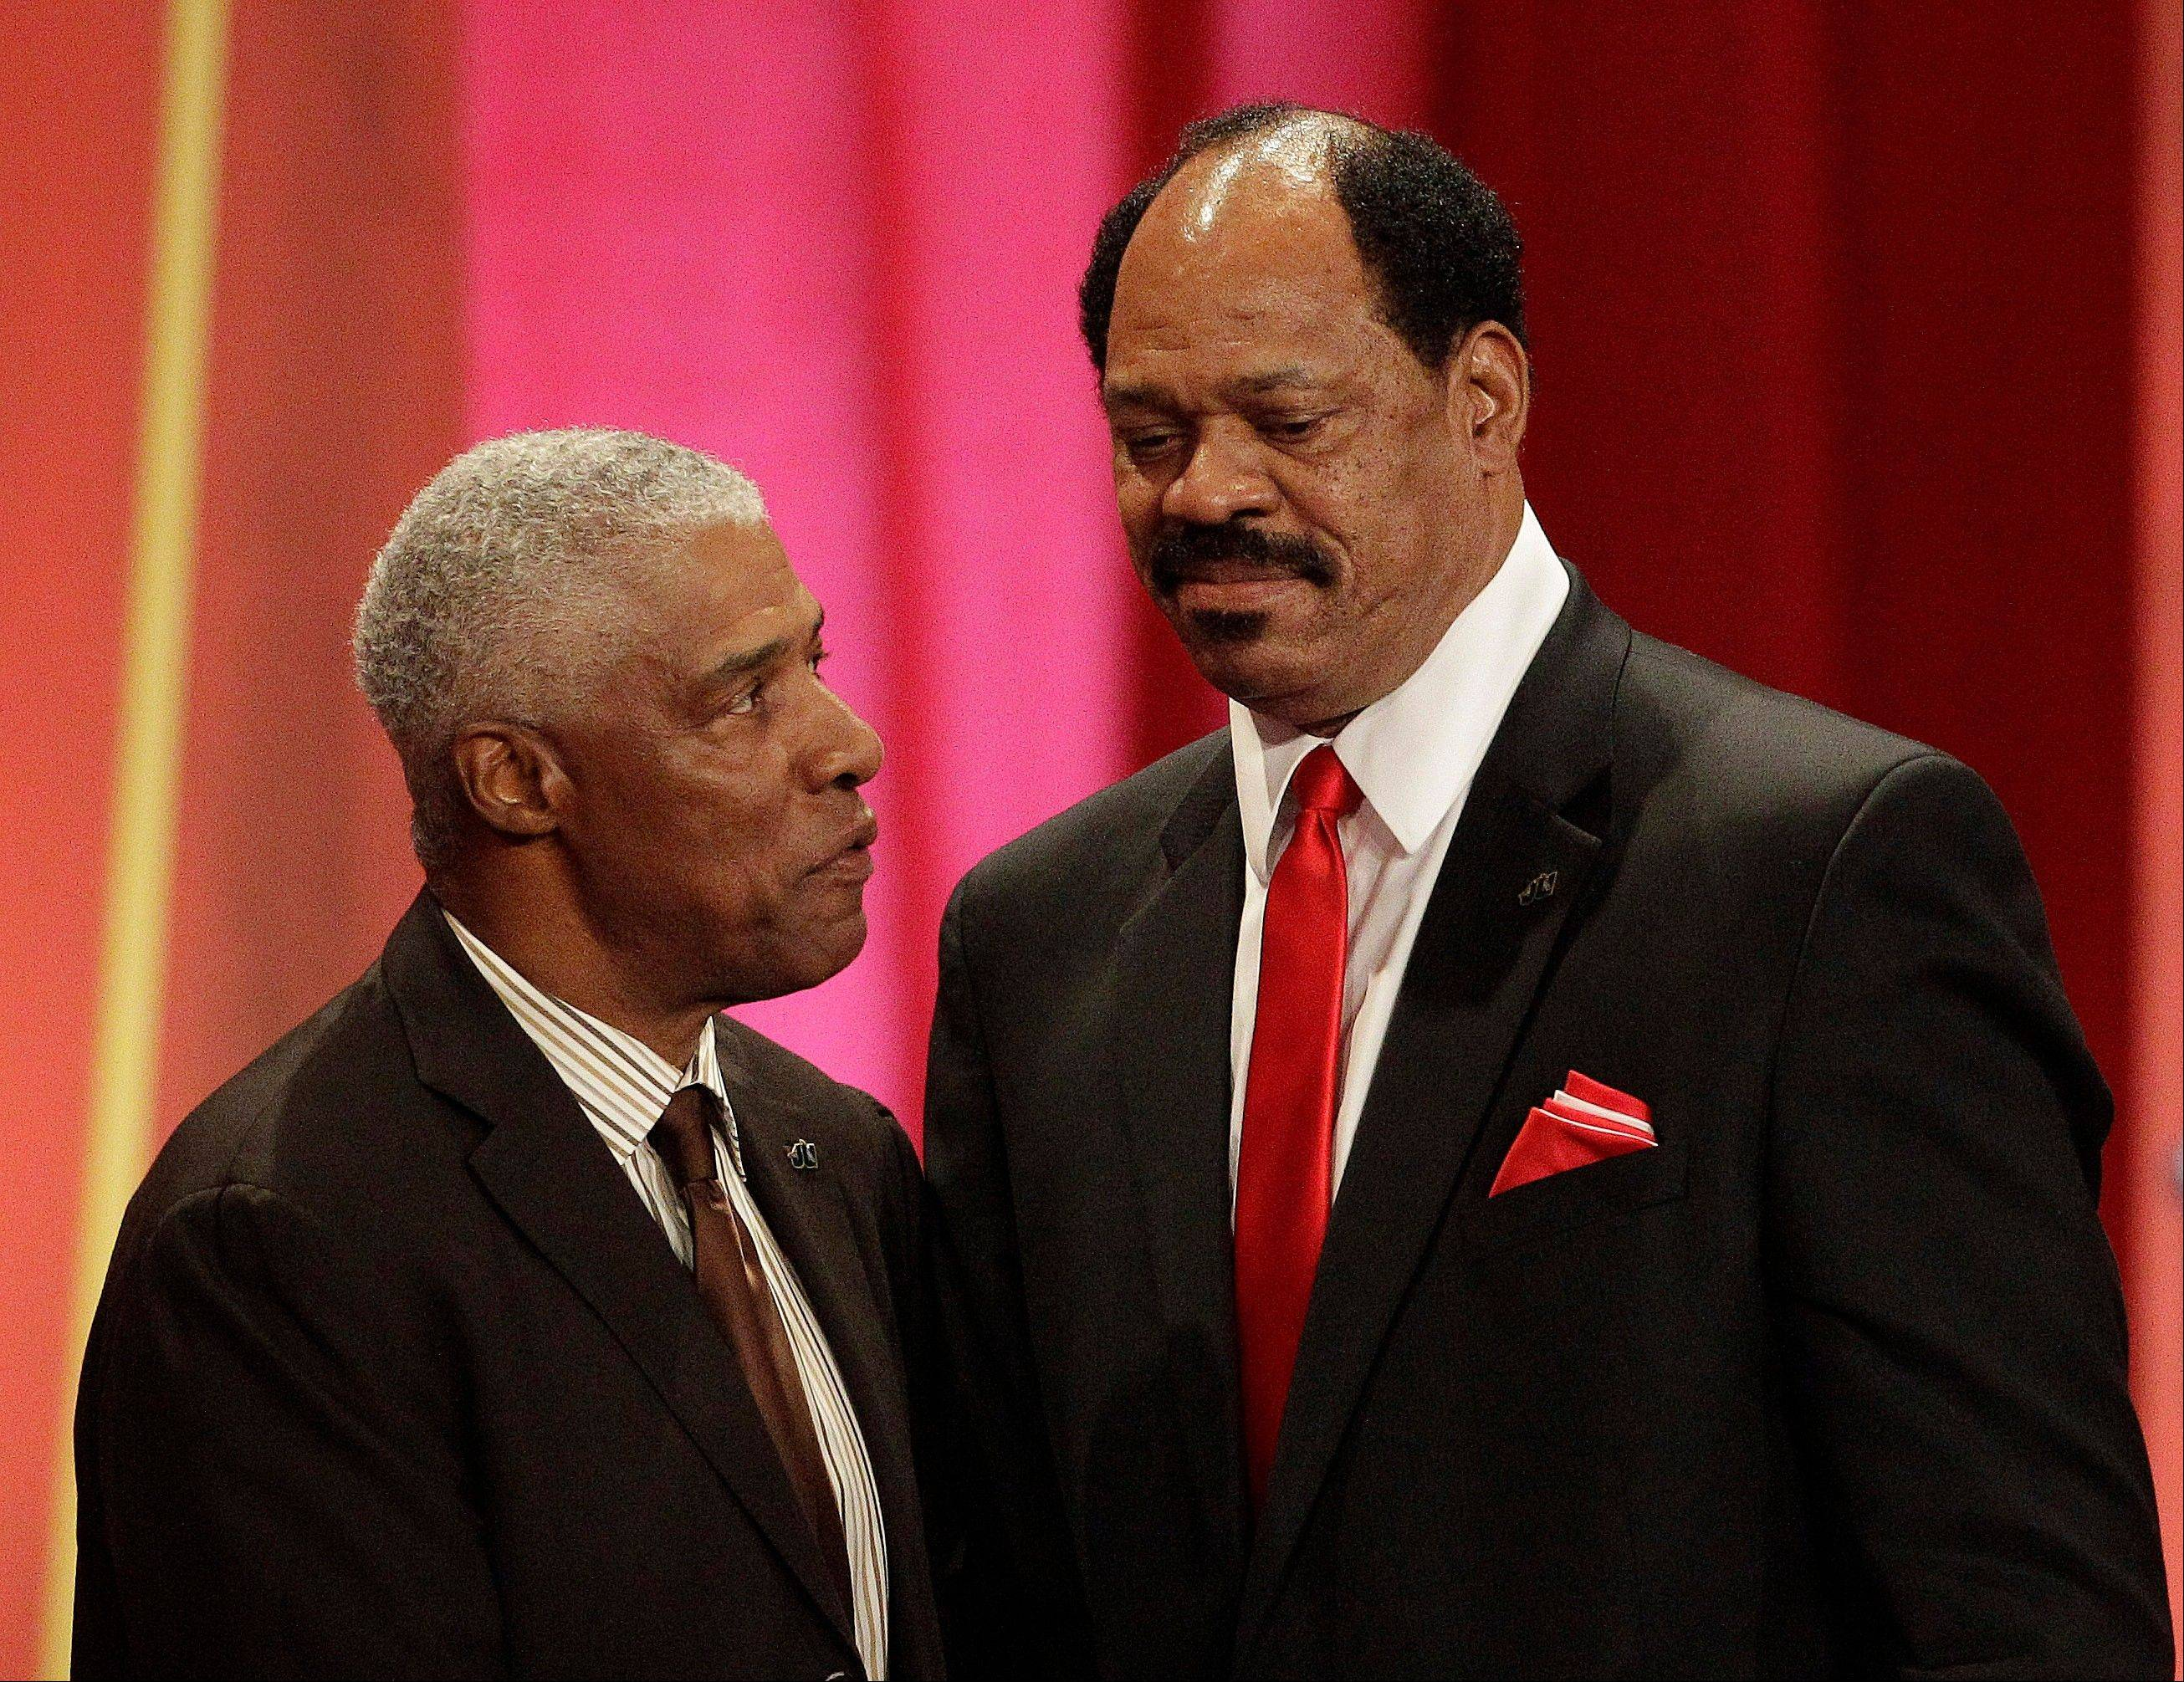 Artis Gilmore, right, is joined by his presenter Julius Erving during a Basketball Hall of Fame enshrinement ceremony .